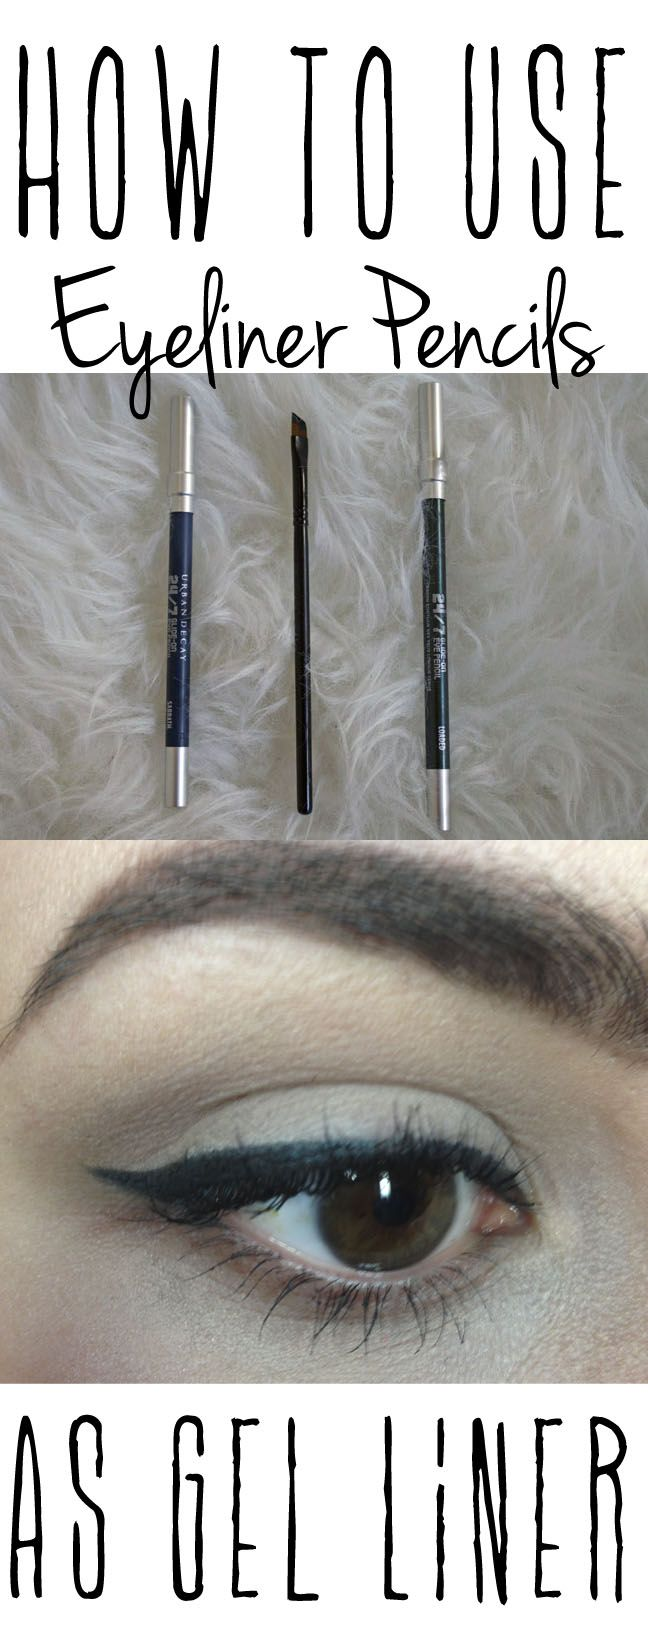 How to use your eyeliner pencil like a gel eyeliner!